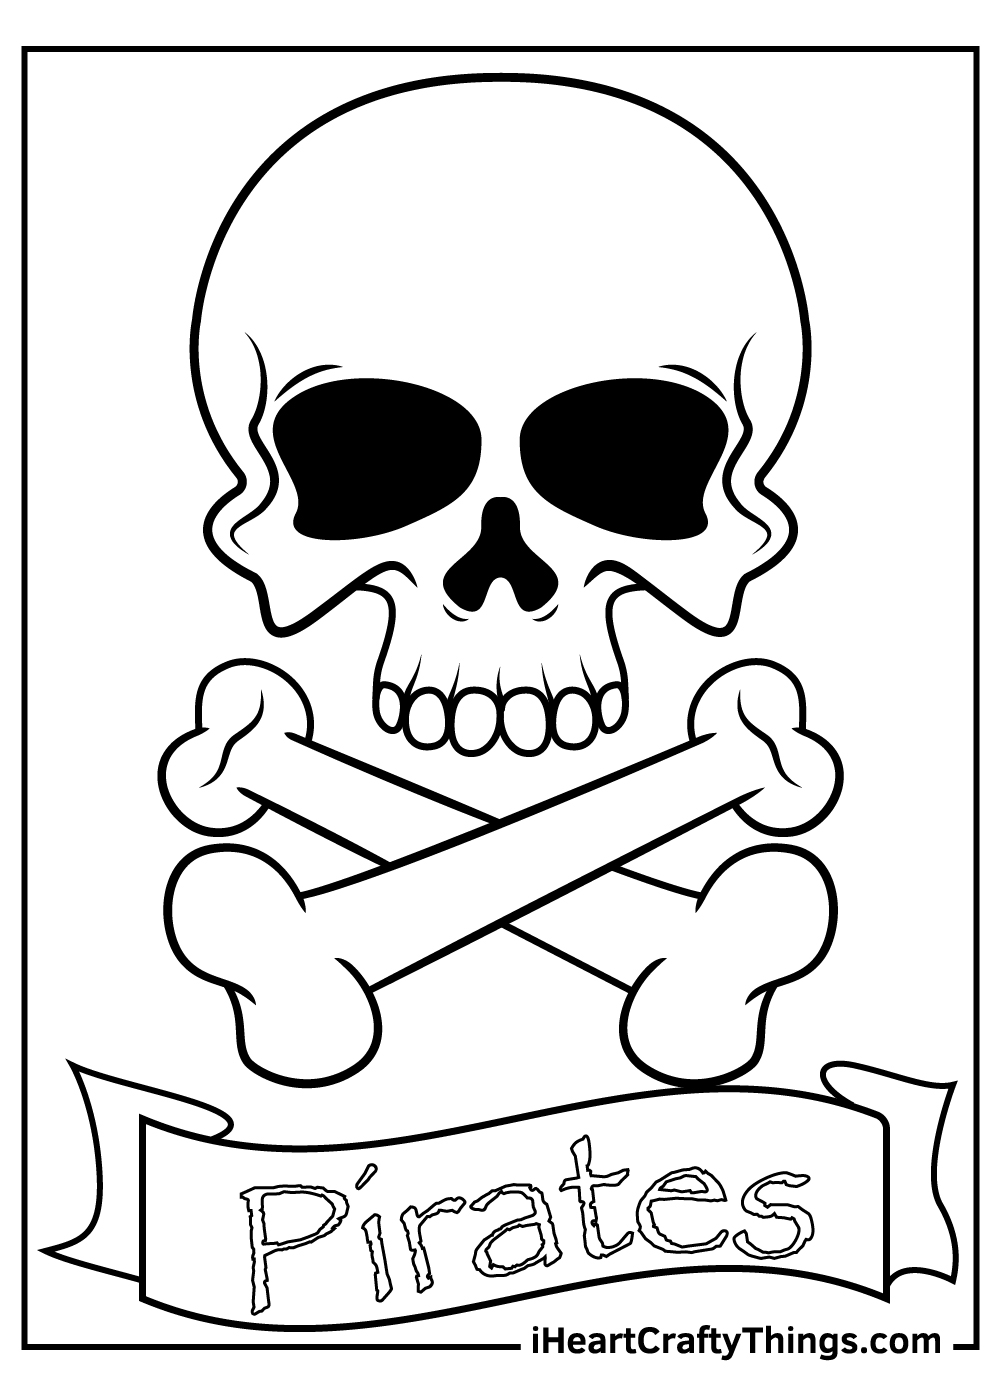 Pirates flag free printable coloring pages